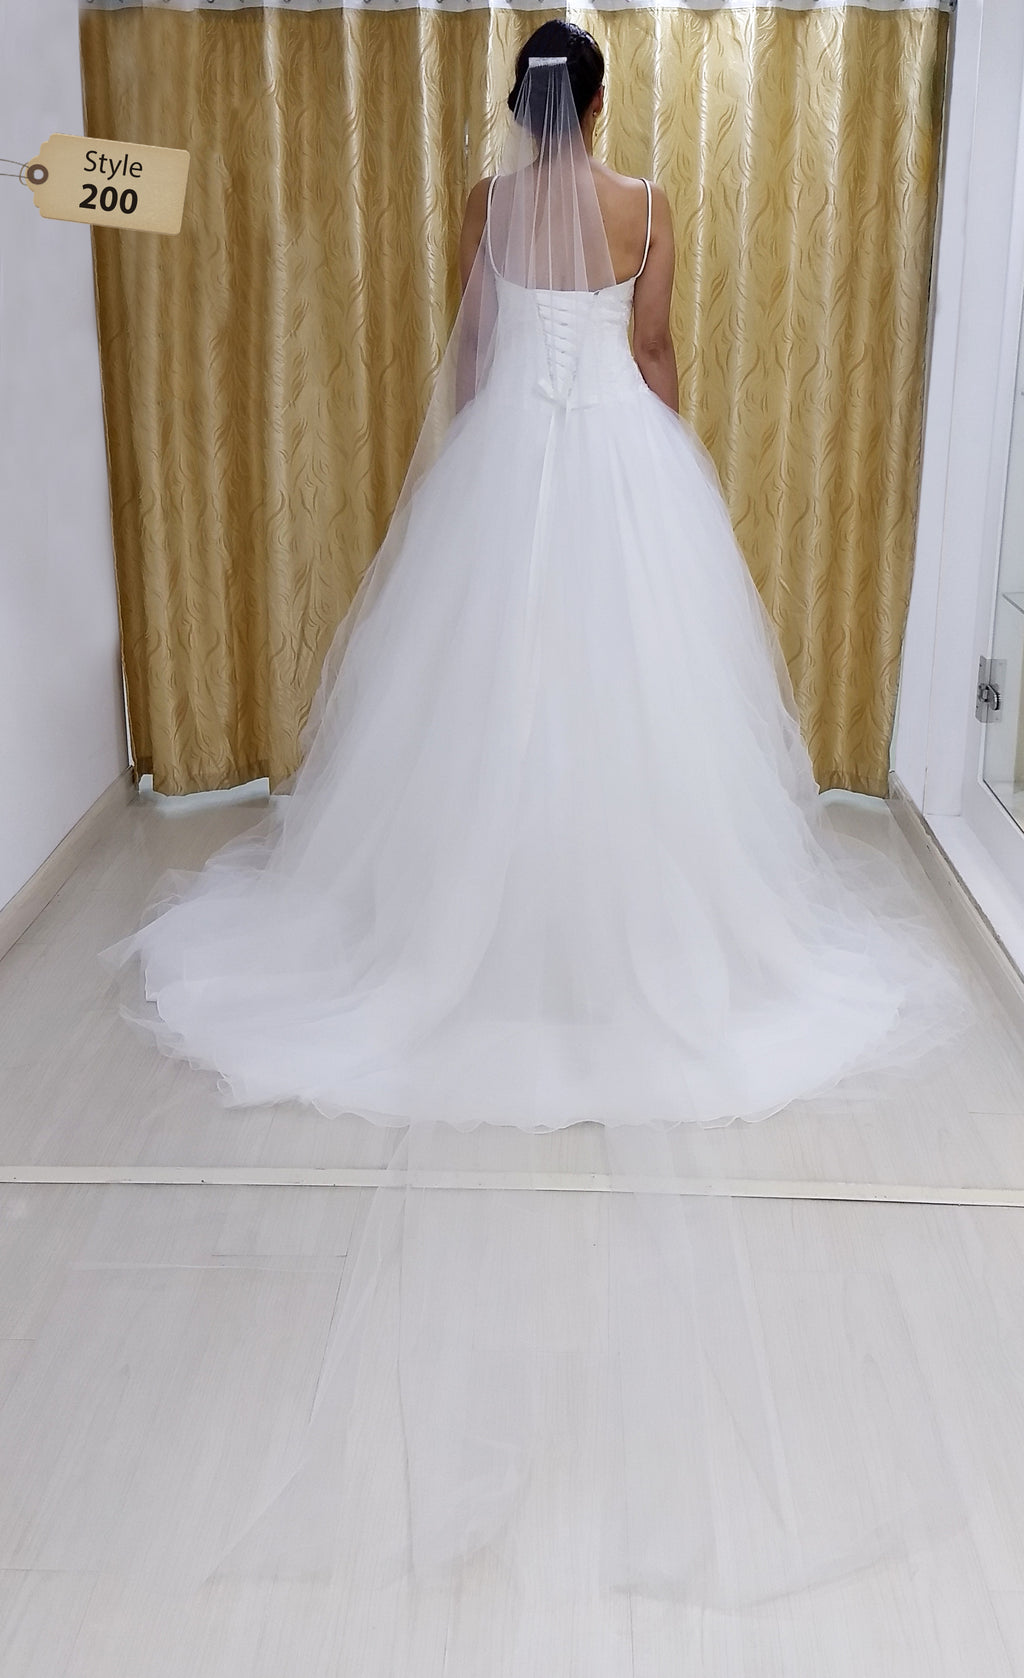 200* - Mori Lee Bridal